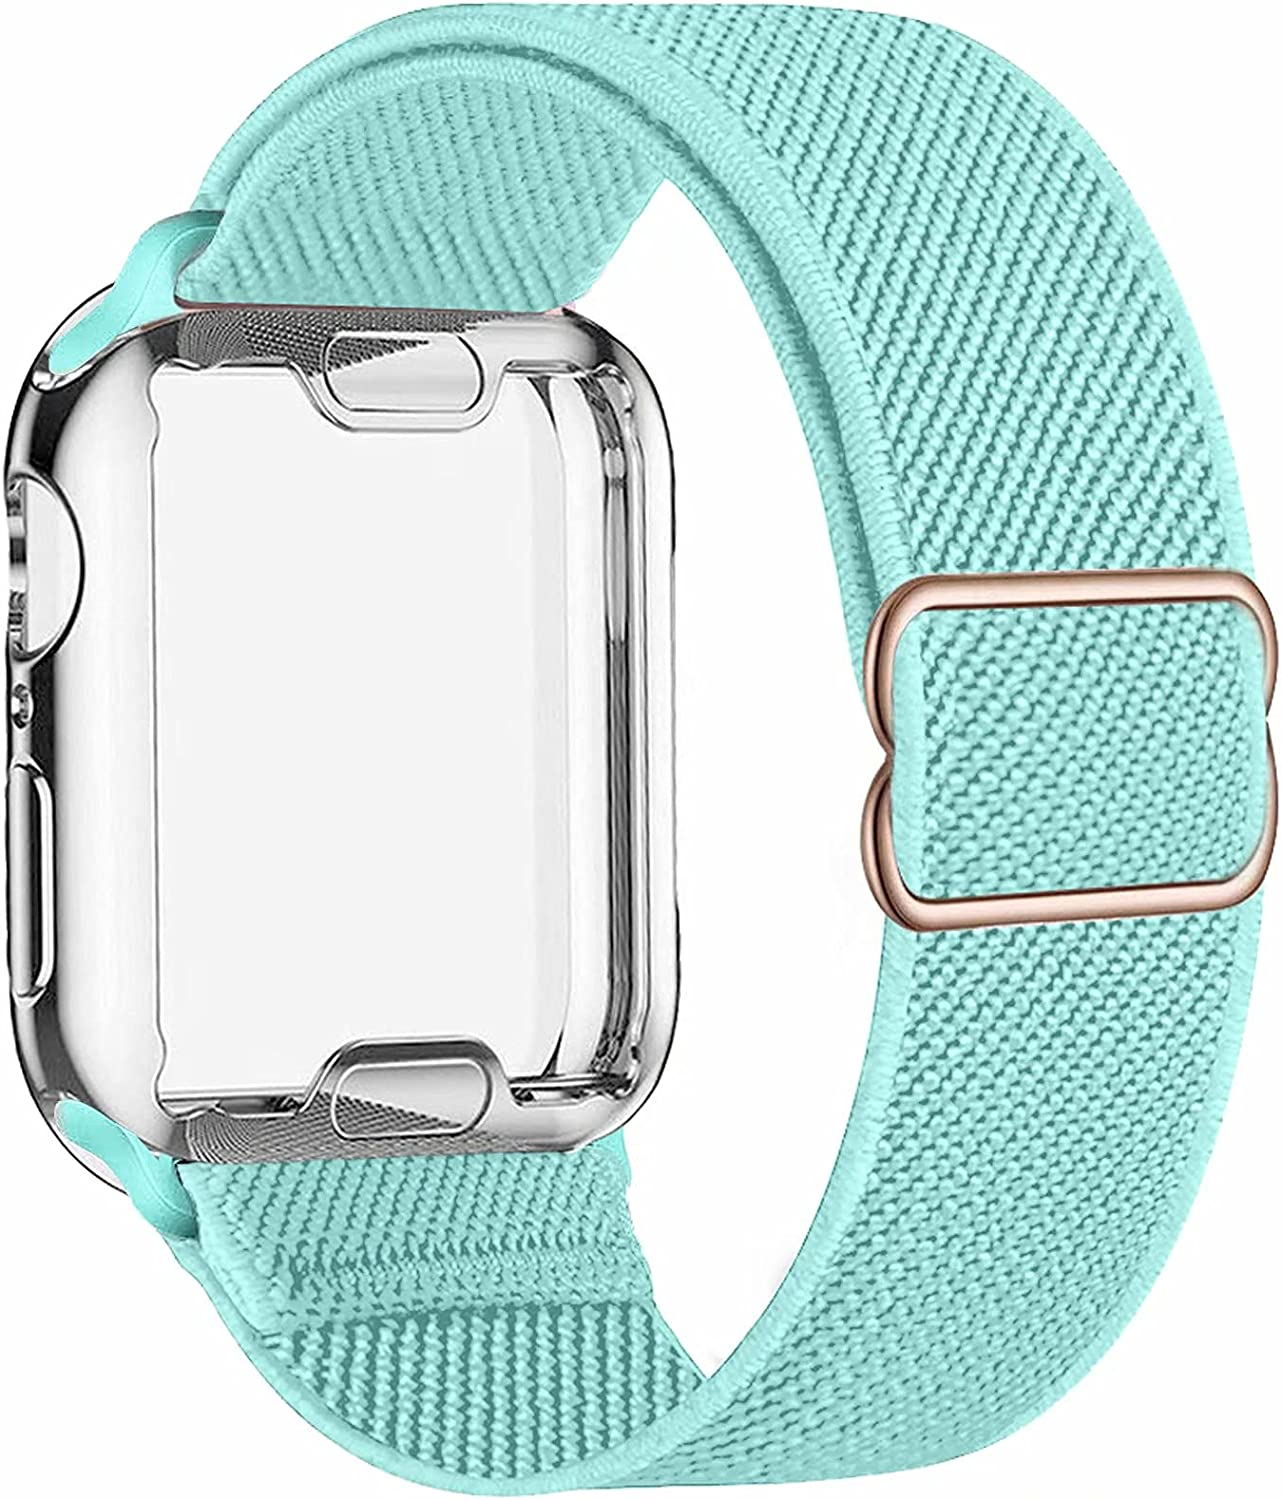 ADWLOF Stretchy Solo Loop with Screen Protector Case Compatible with Apple Watch Bands 44mm,Adjustable Braided Sport Nylon Elastics Men Women Compatible with iWatch Series 6/5/4/3/2/1,SE,Mint Green